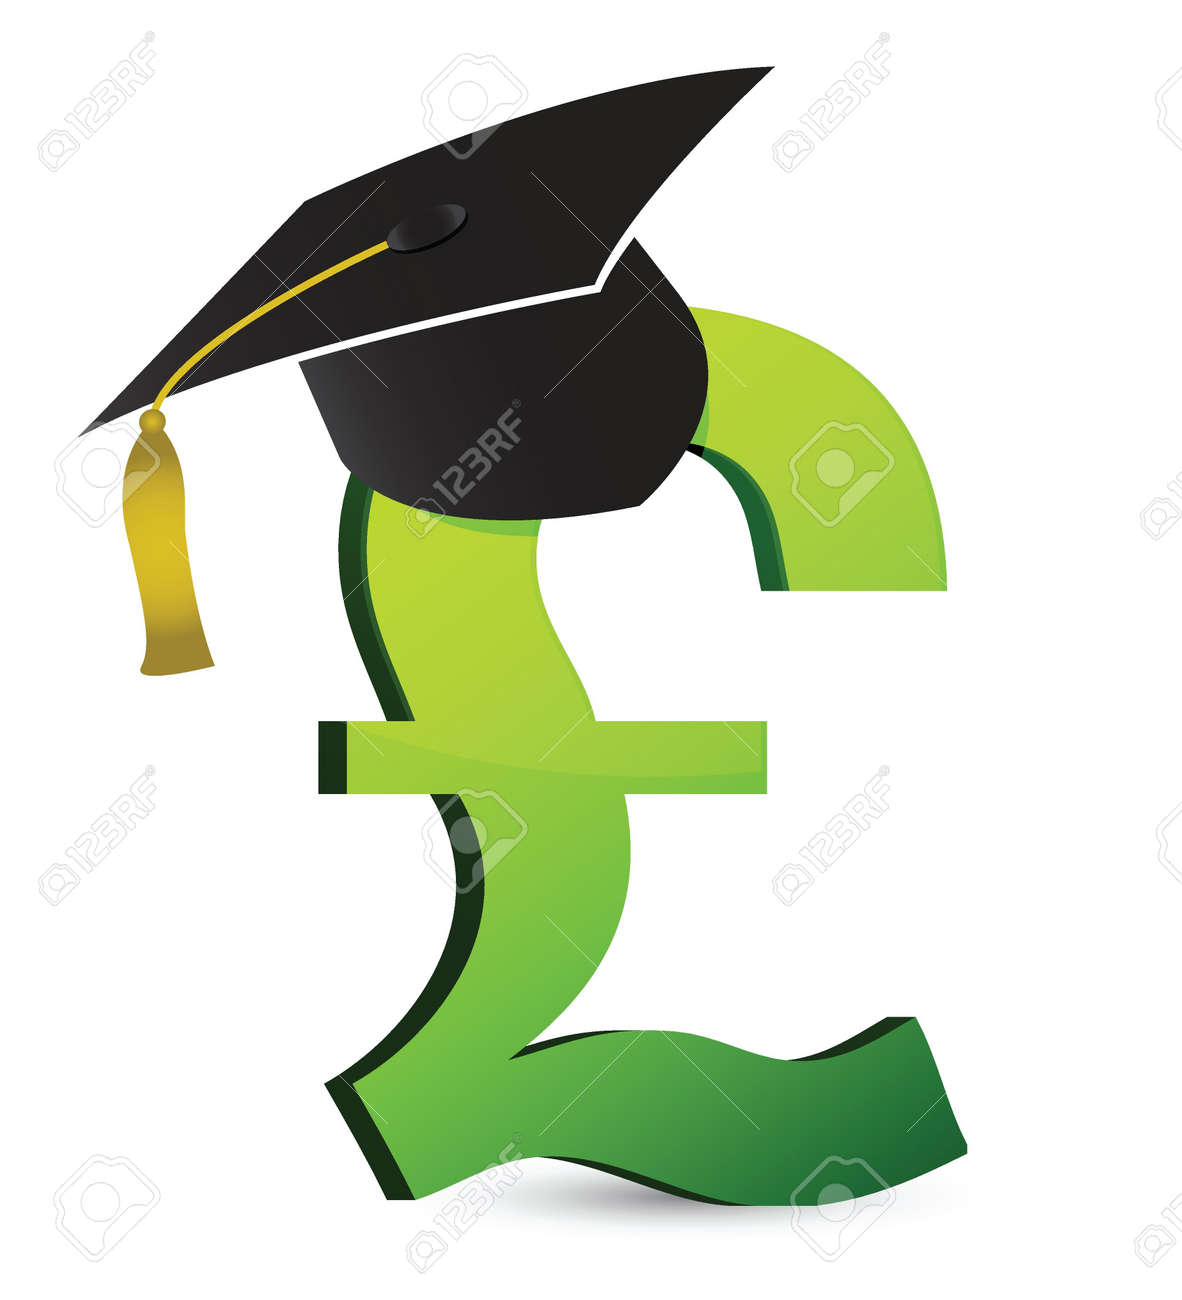 education cost in pound's illustration design over a white background Stock Vector - 16437833